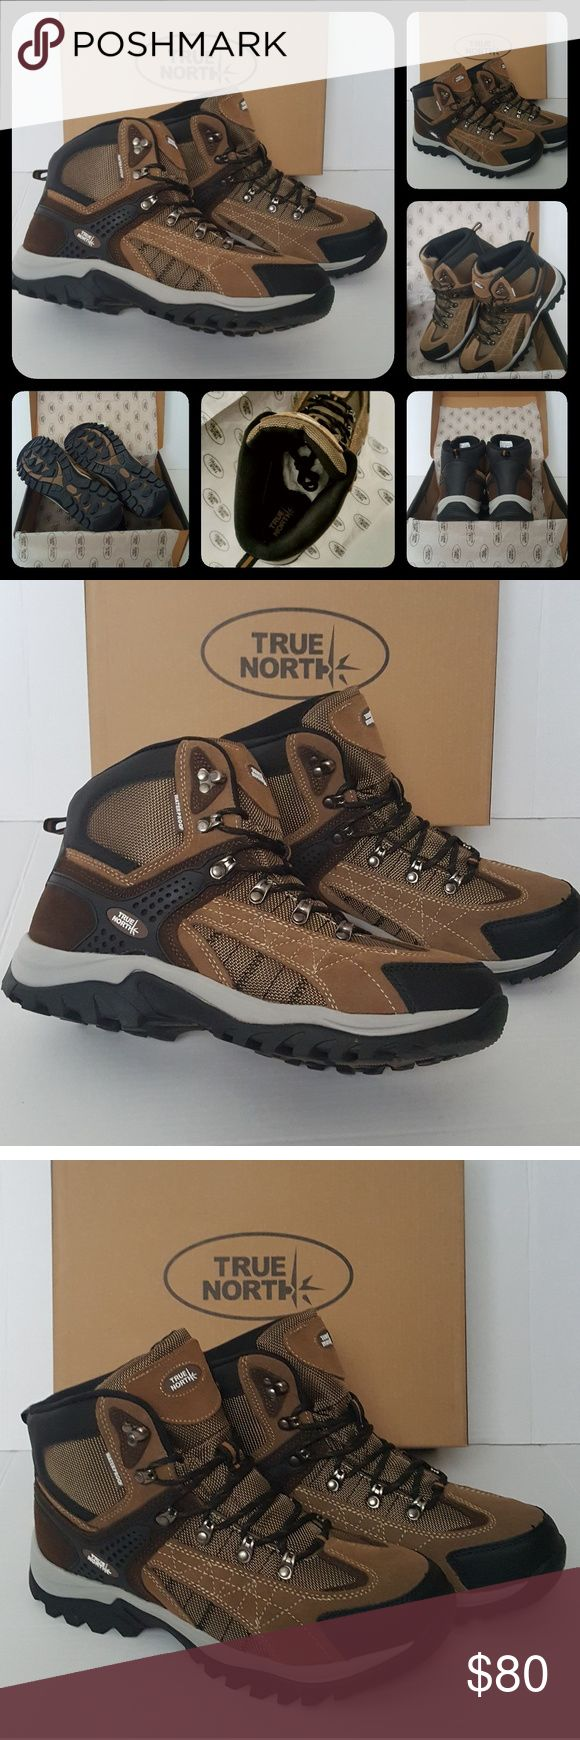 *TRUE NORTH* Men's Hiking Boots NEW IN BOX!  Sz 11 ** TRUE NORTH **  - High top men's hiking boots - Waterproof - Lightweight - Comfortable - Removable cushioned insole - Thick padded ankle & tongue for comfort.  NEW IN BOX! **Other styles available in my closet** True North Shoes Boots